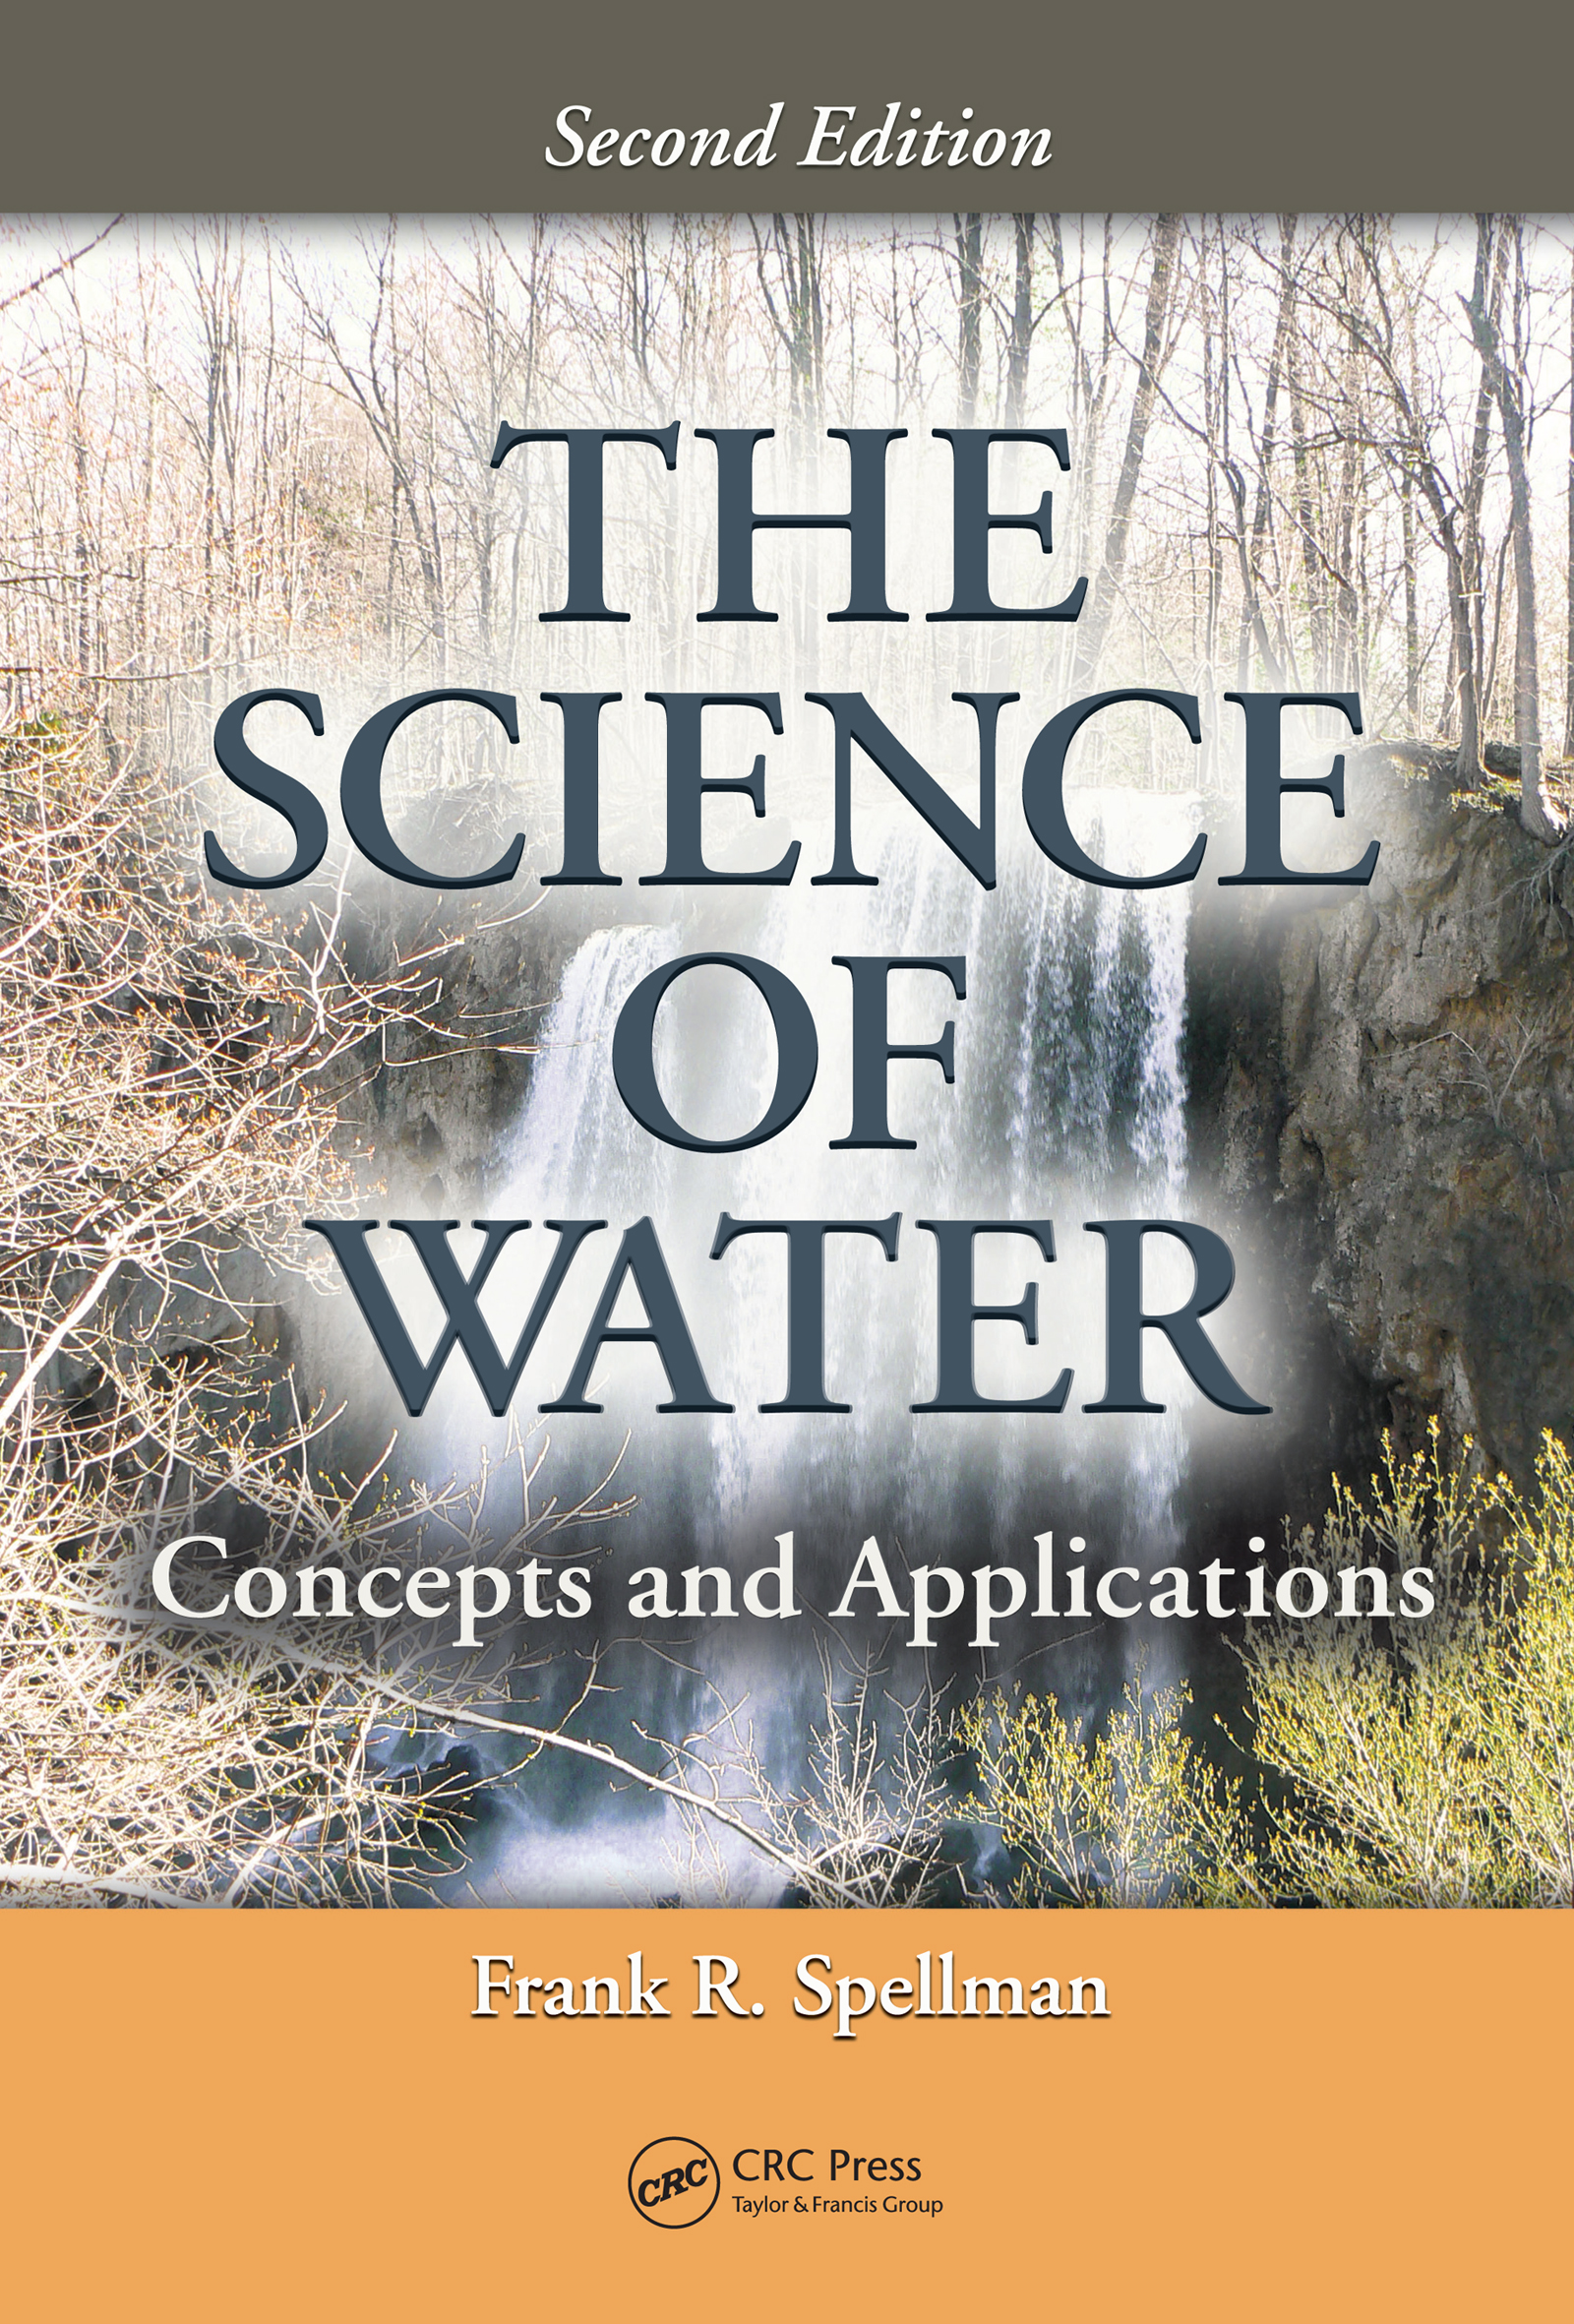 Download Ebook The Science of Water (2nd ed.) by Frank R. Spellman Pdf